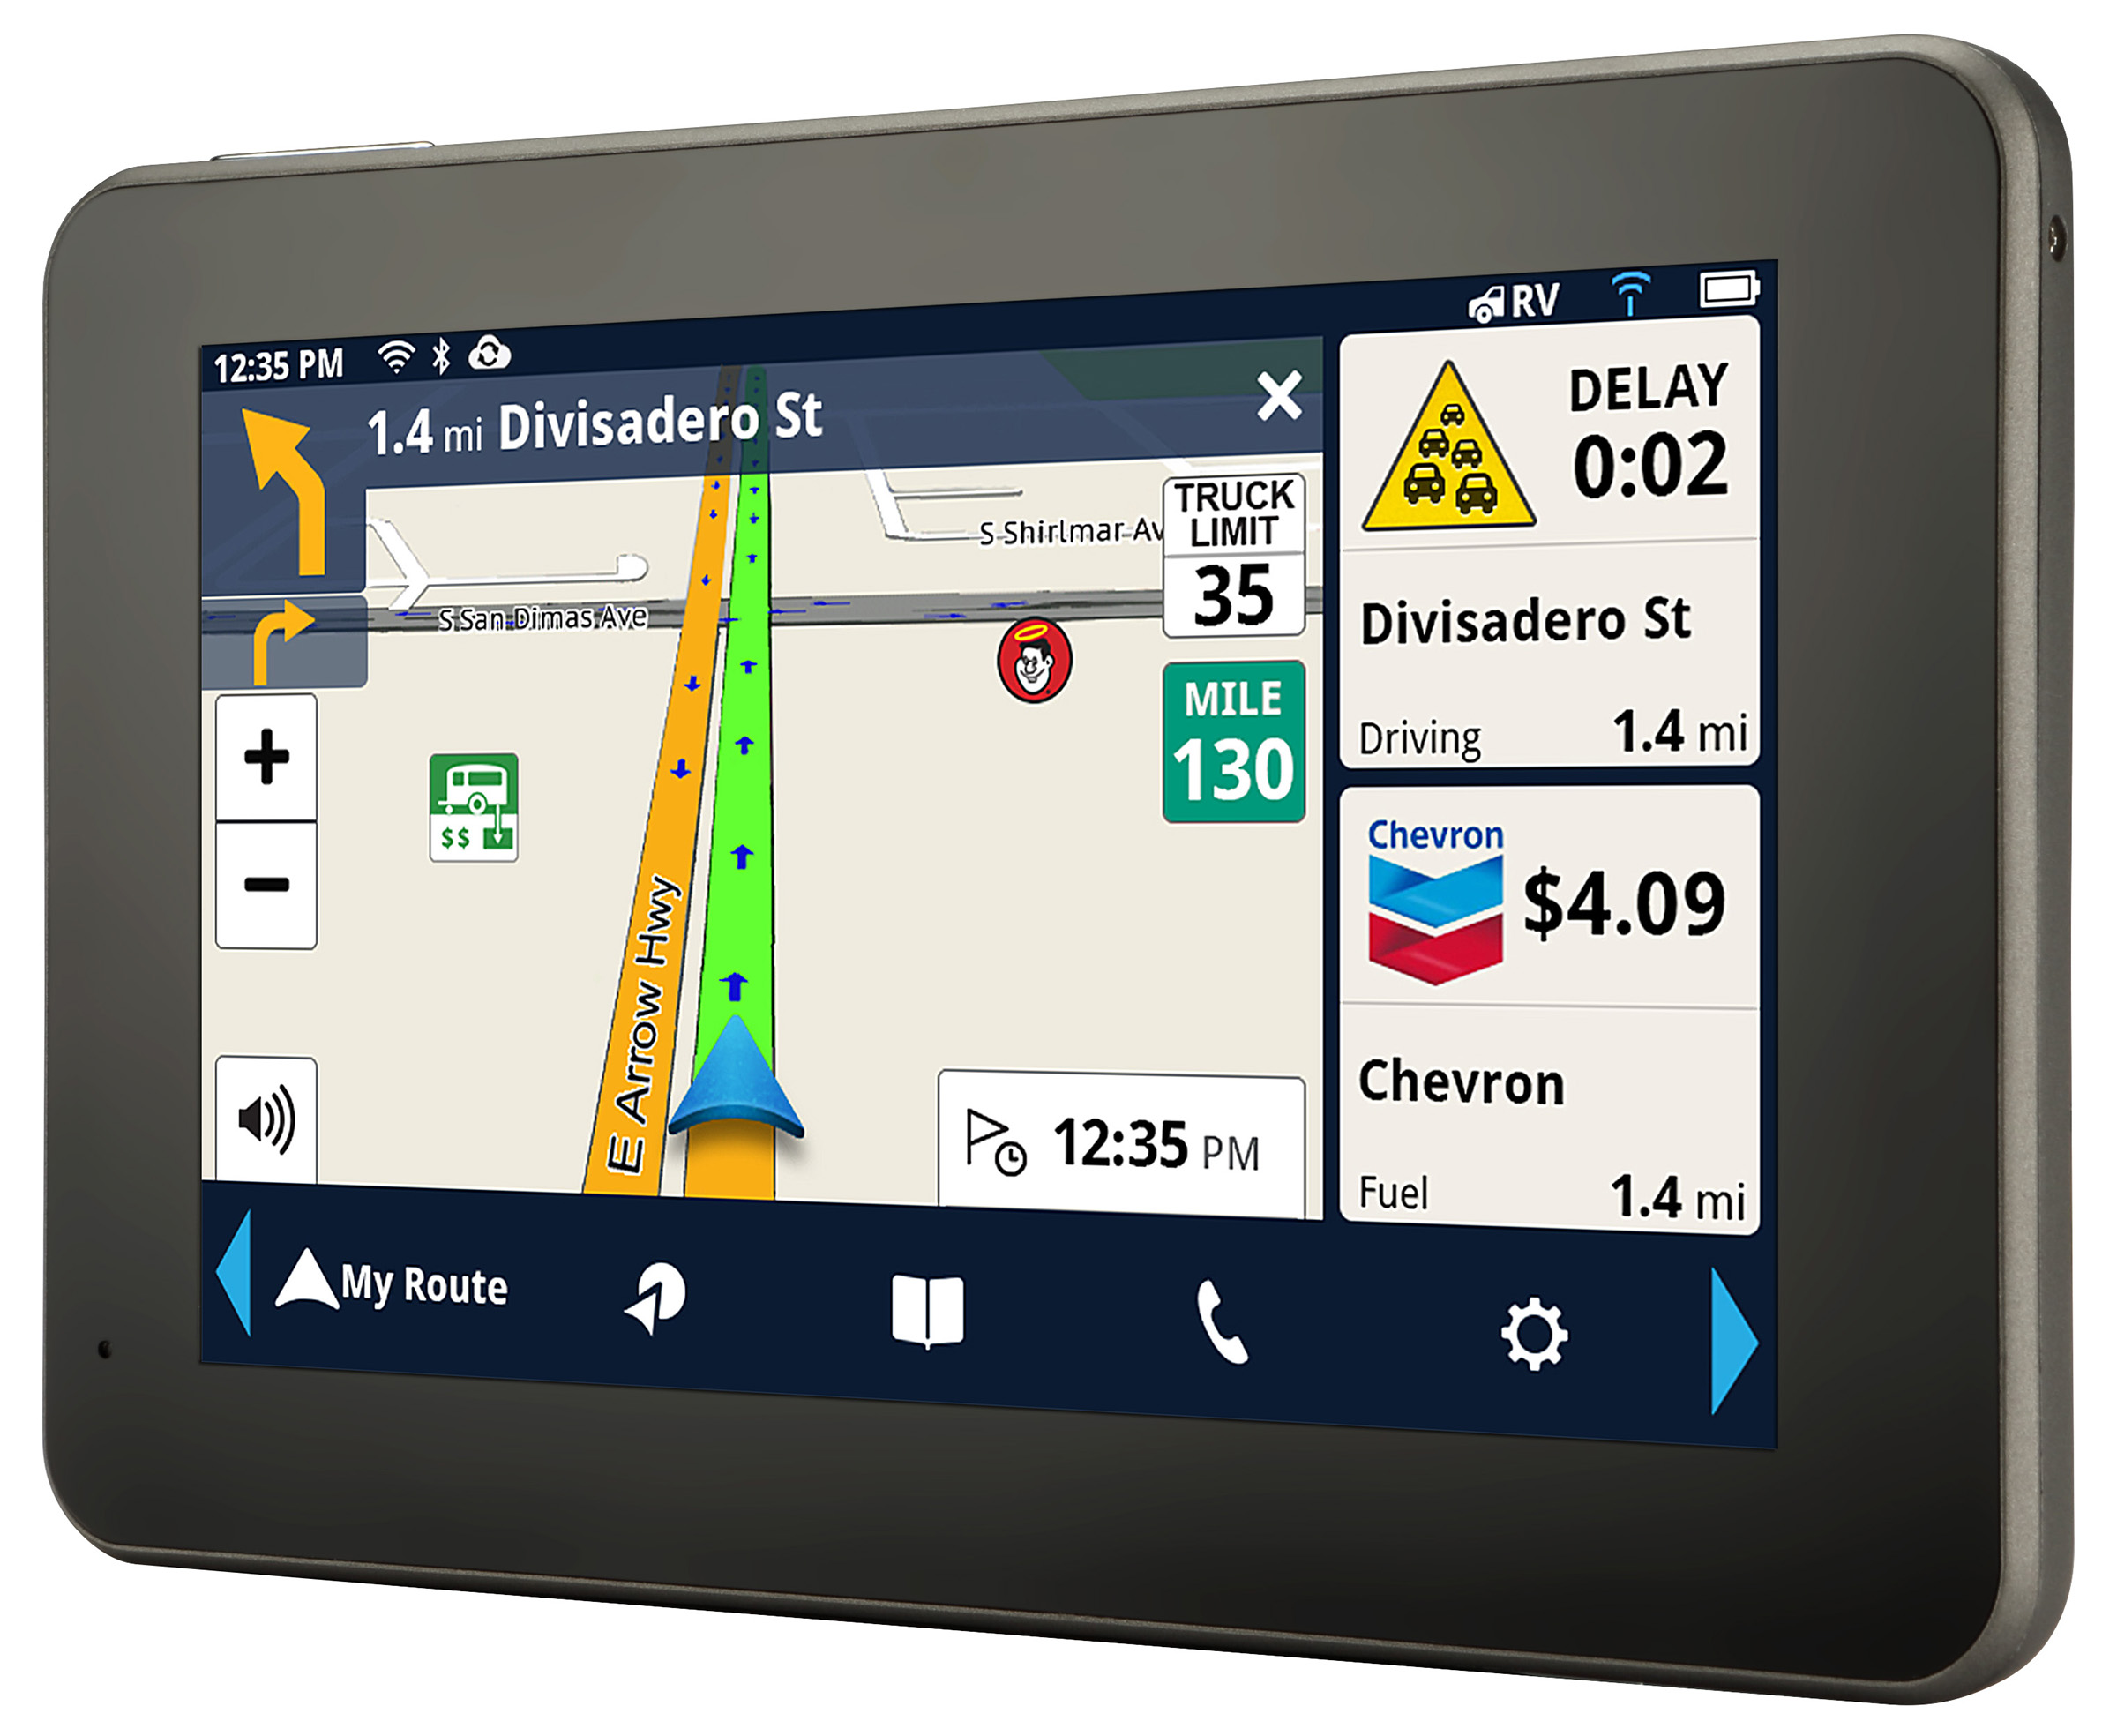 magellan roadmate owners manual how to and user guide instructions u2022 rh taxibermuda co Magellan RoadMate 1700 Features Magellan RoadMate 1700 Specs